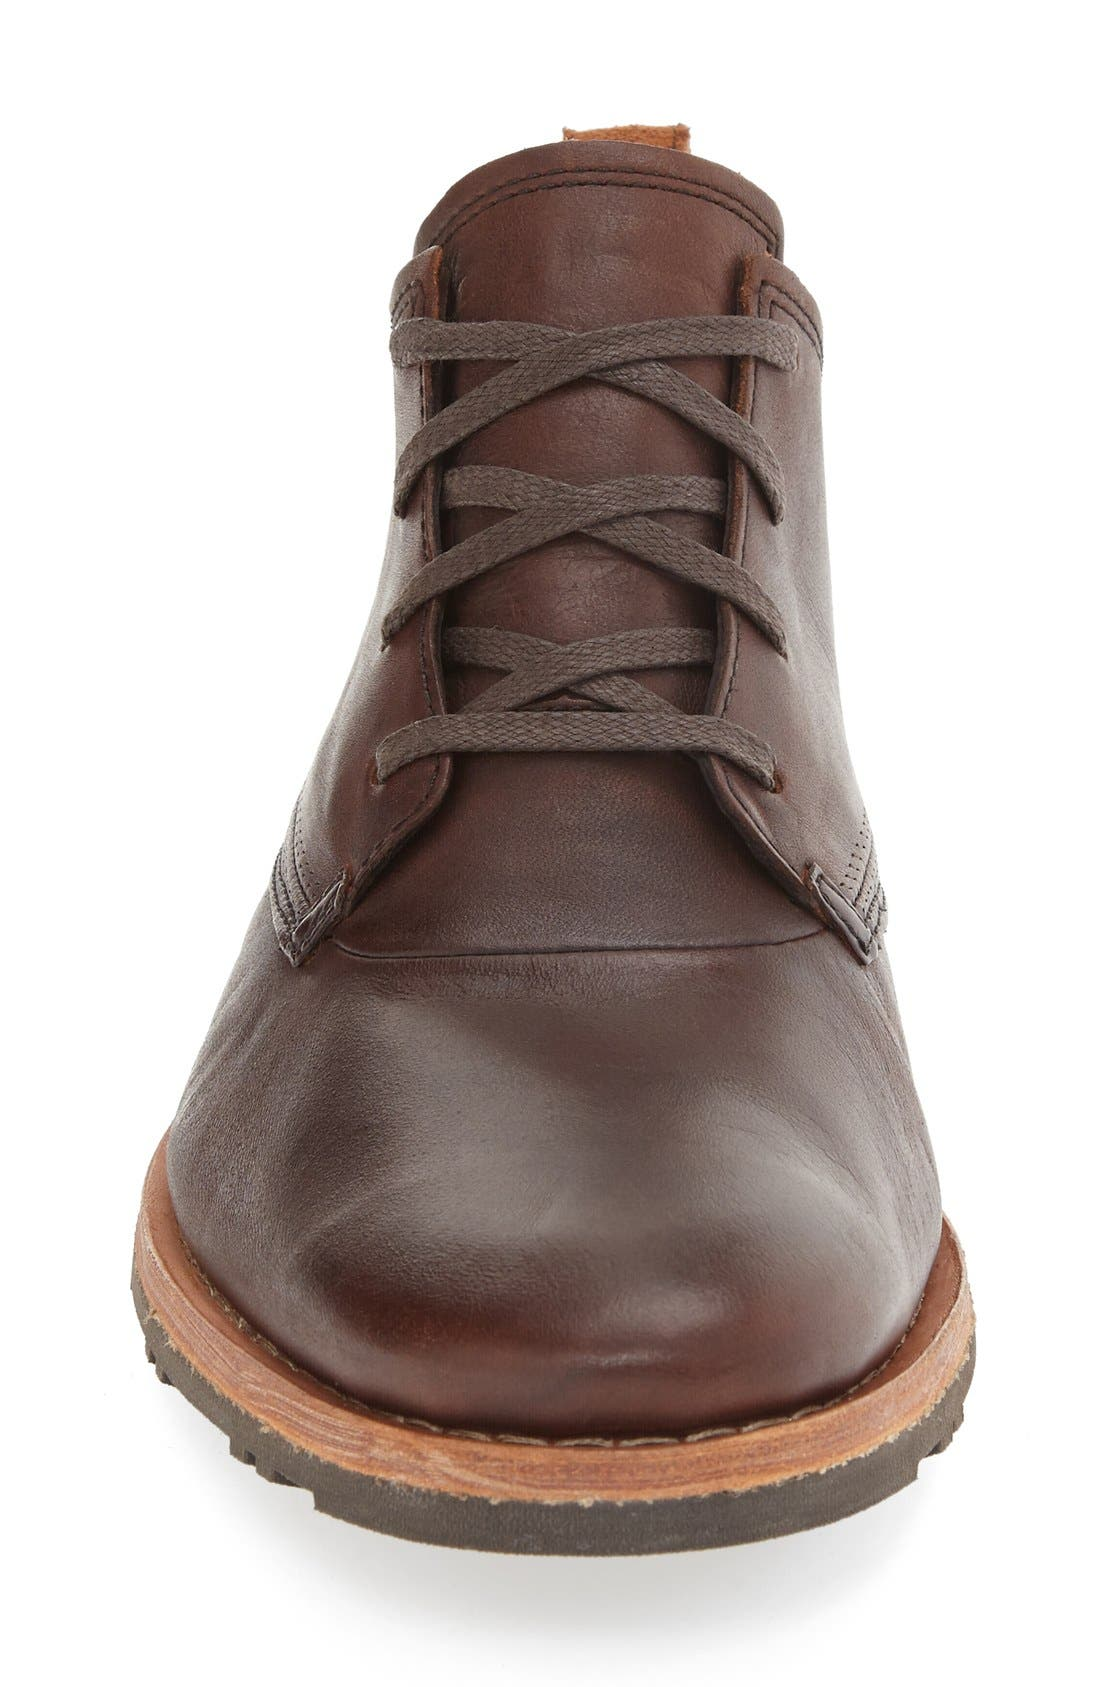 'Bardstown' Chukka Boot,                             Alternate thumbnail 15, color,